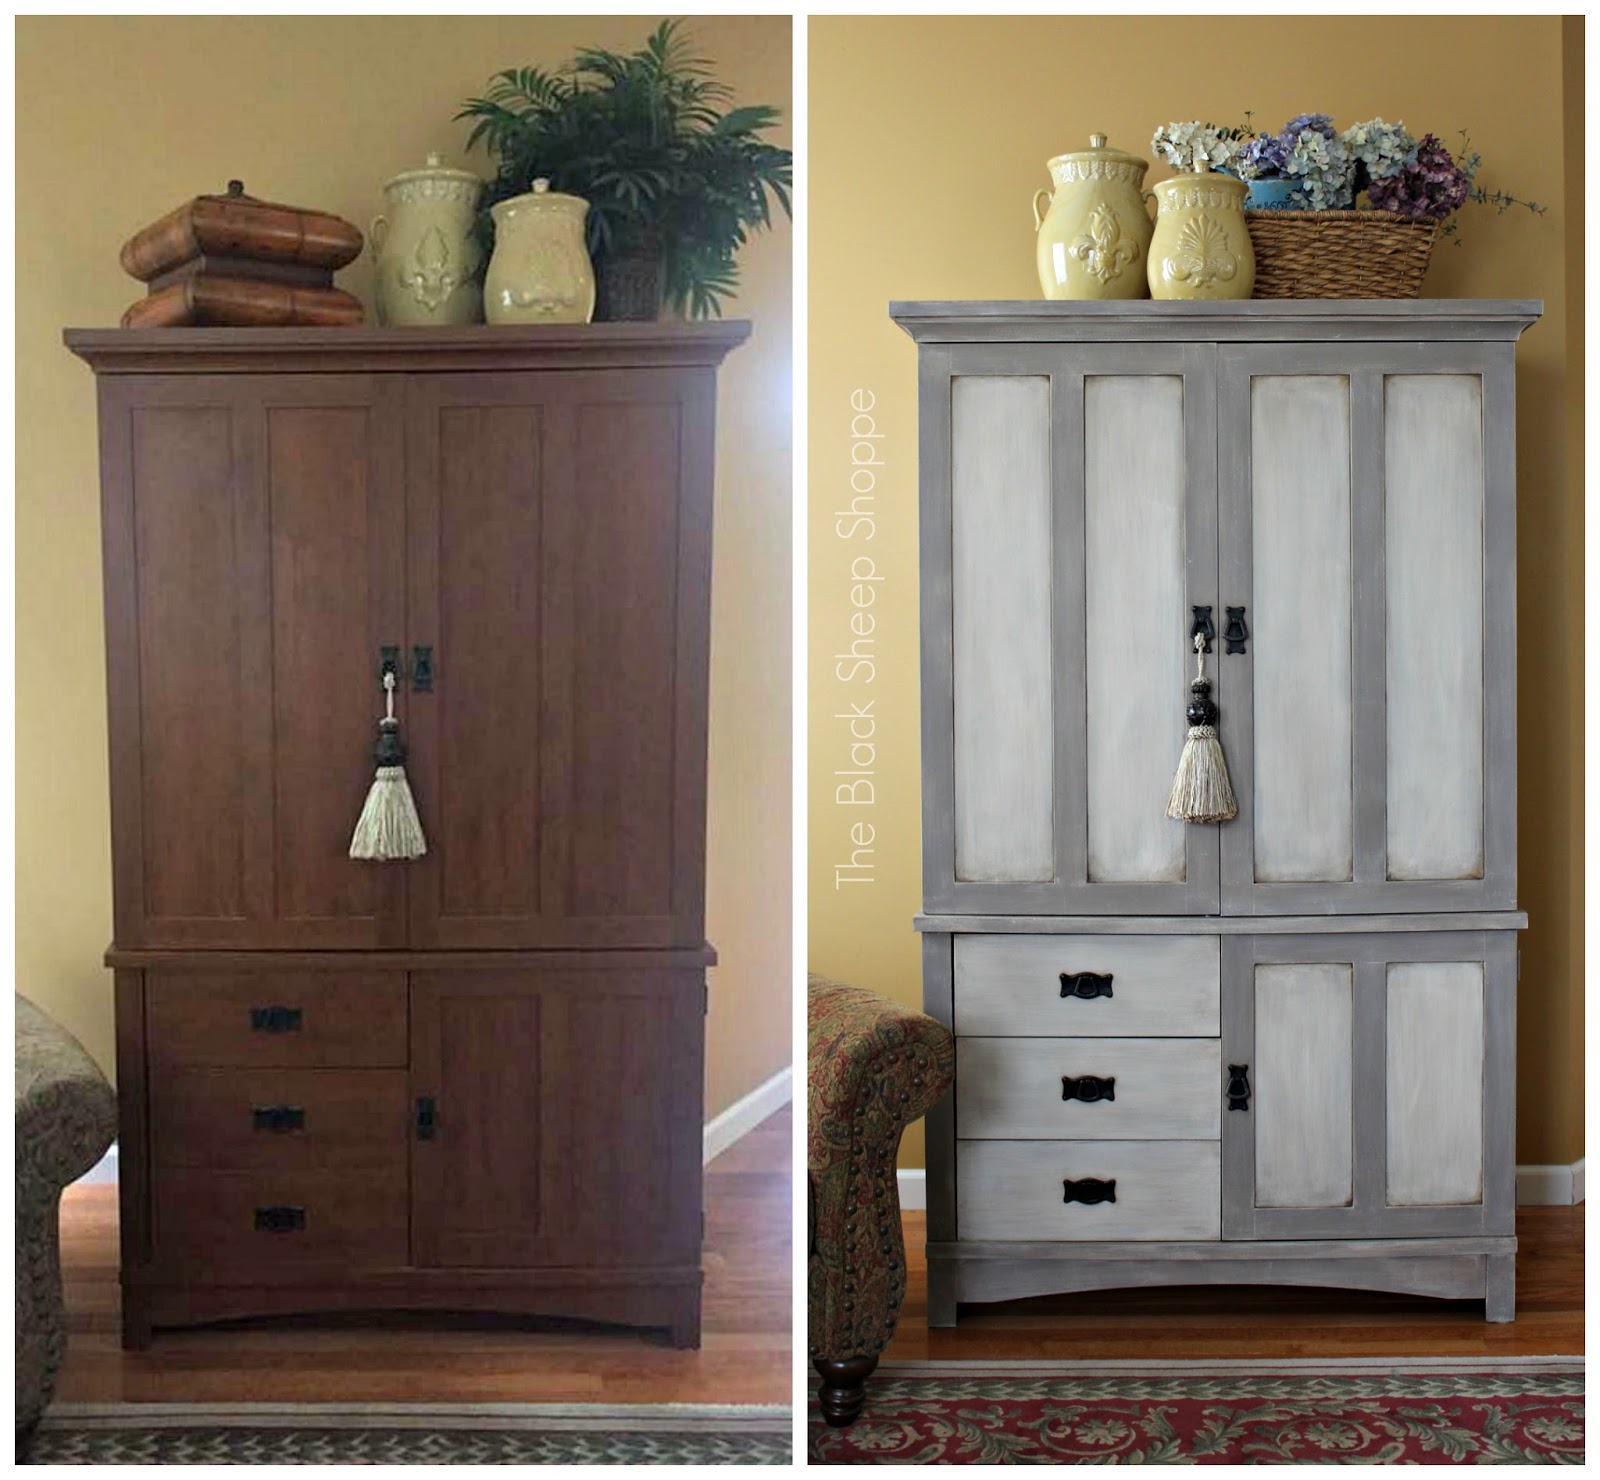 Before and after TV armoire.